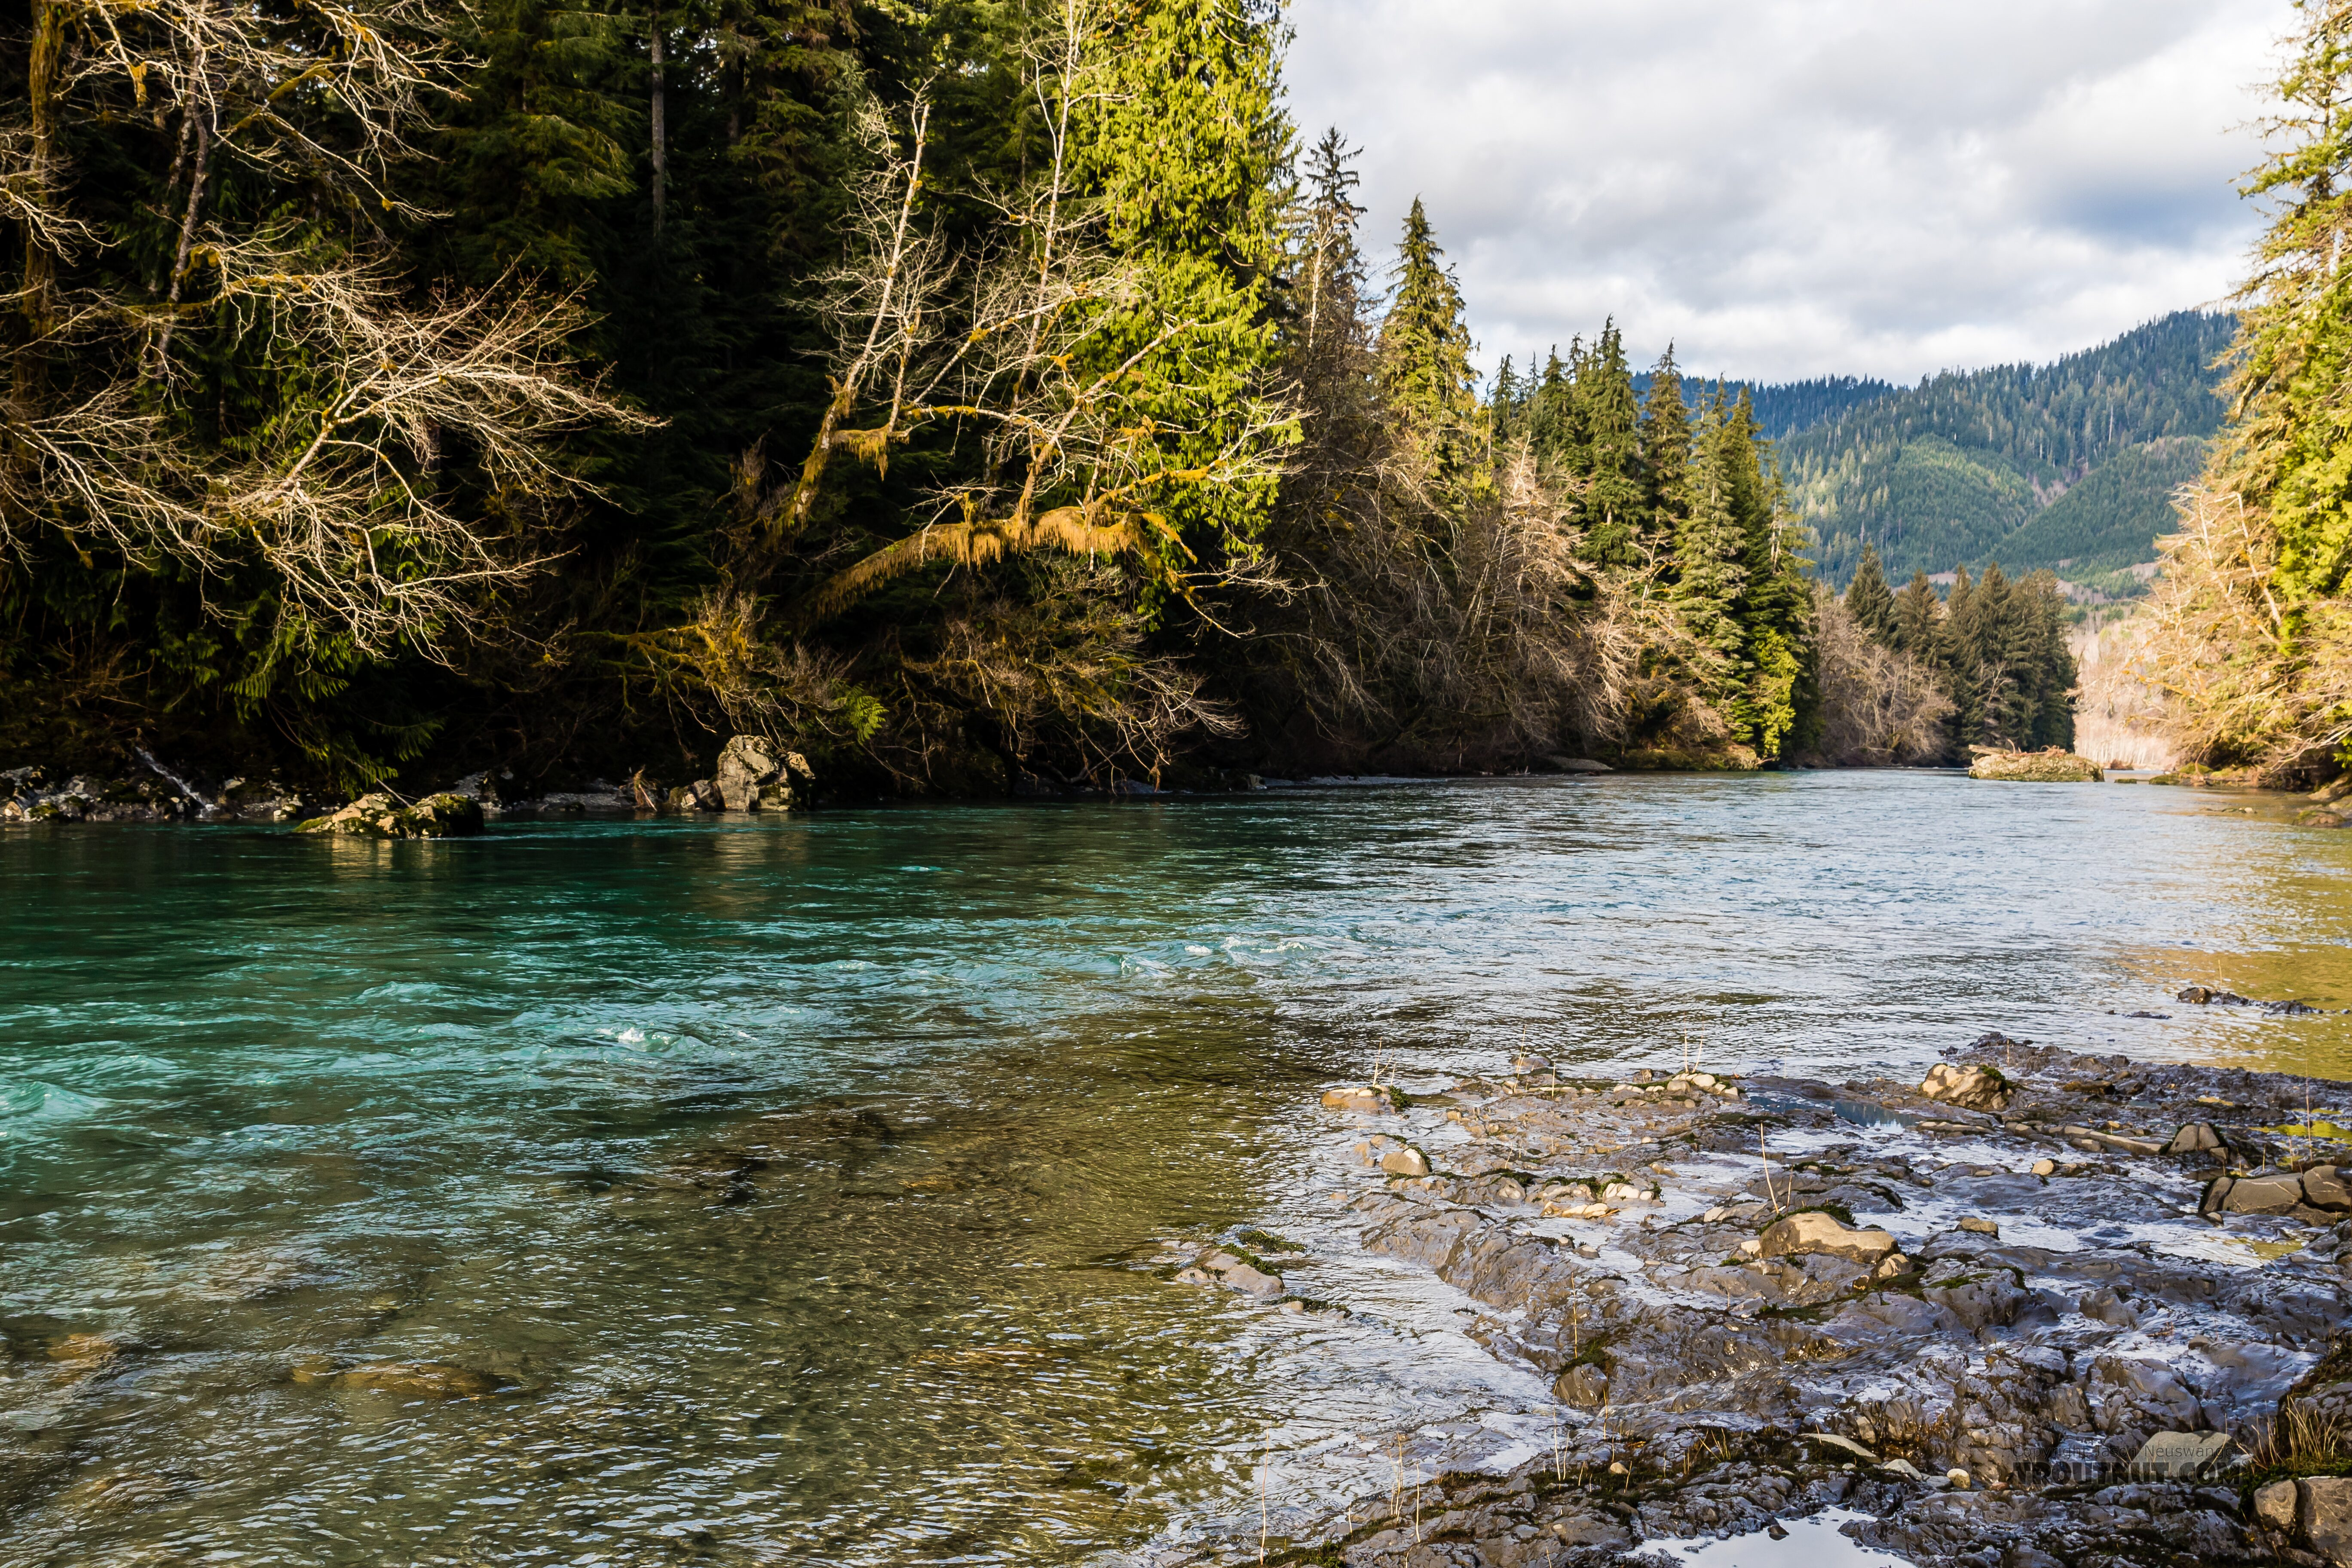 From the Hoh River in Washington.